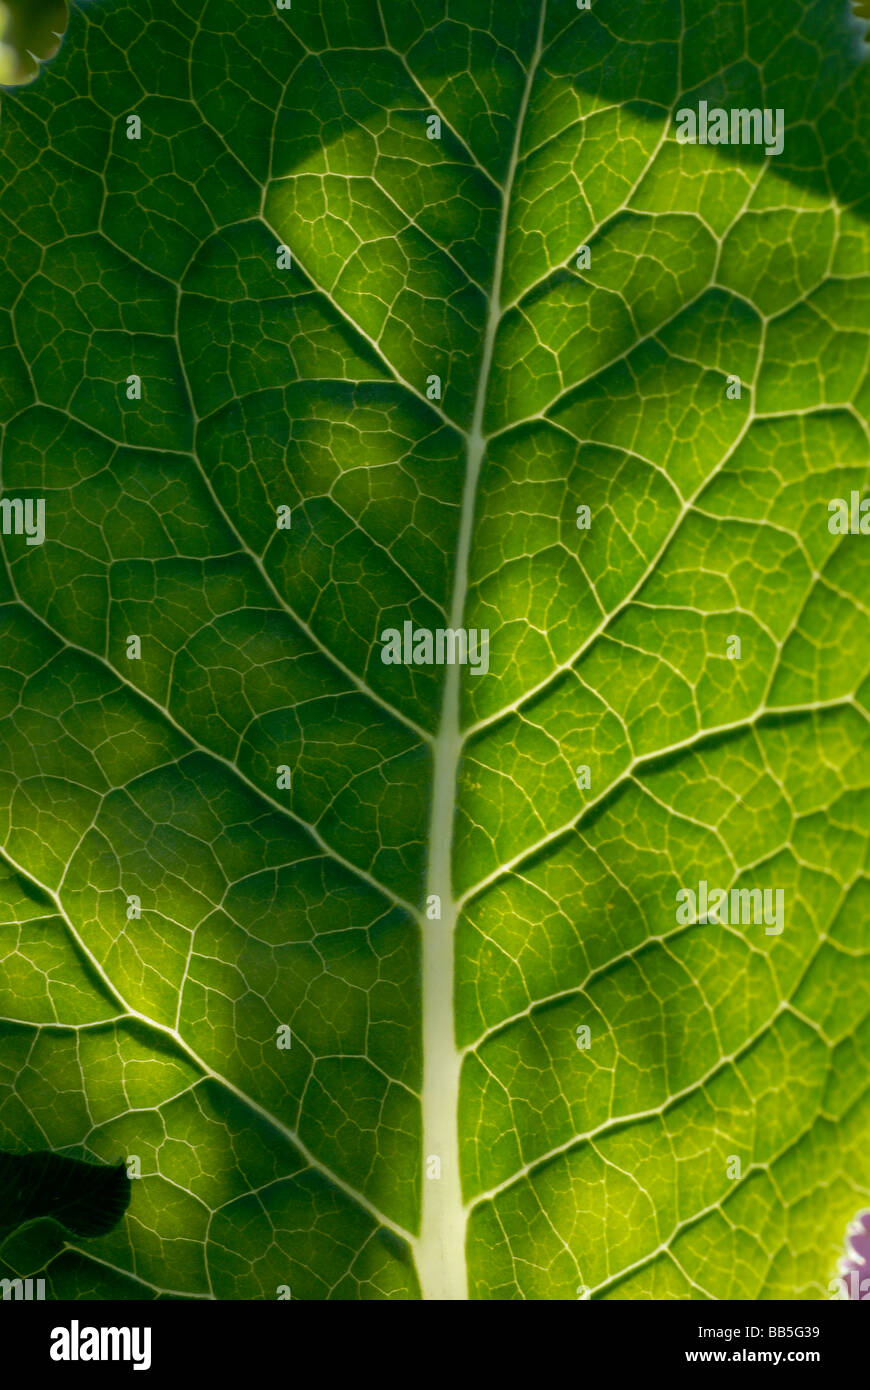 Selective focus leaf detail Stock Photo